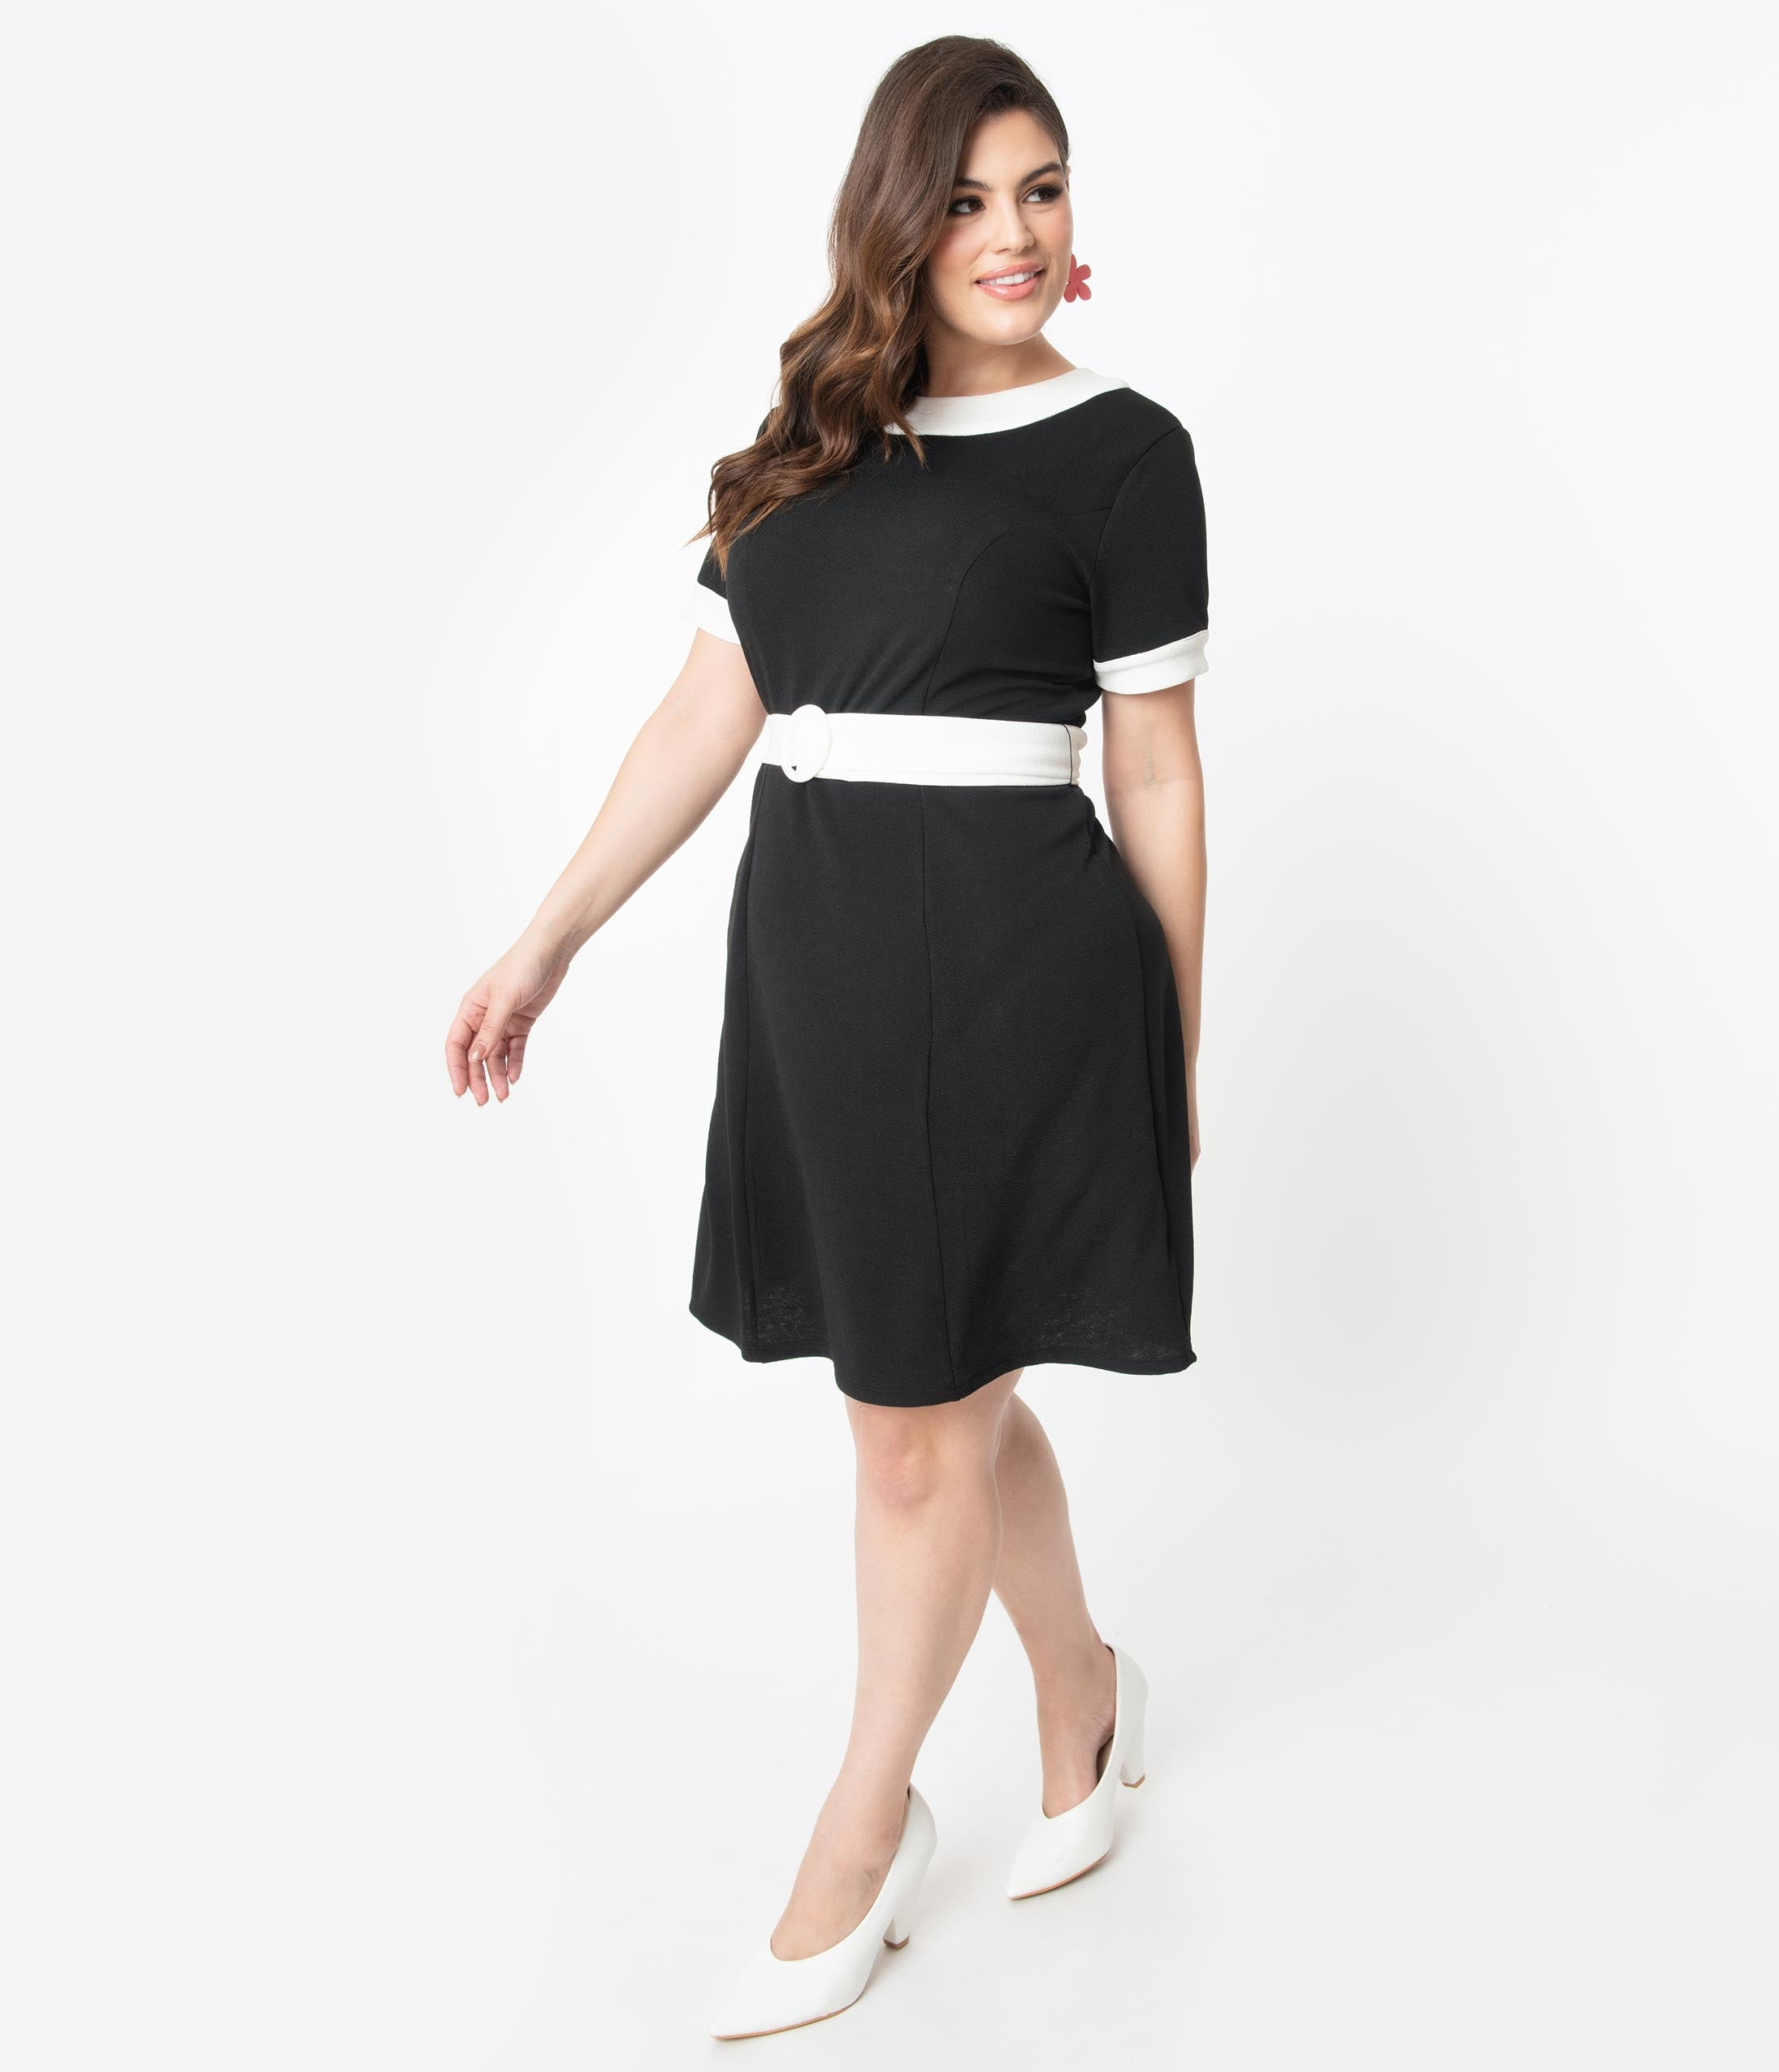 500 Vintage Style Dresses for Sale | Vintage Inspired Dresses Smak Parlour Plus Size Black  White Belted Show Stealer Dress $58.00 AT vintagedancer.com